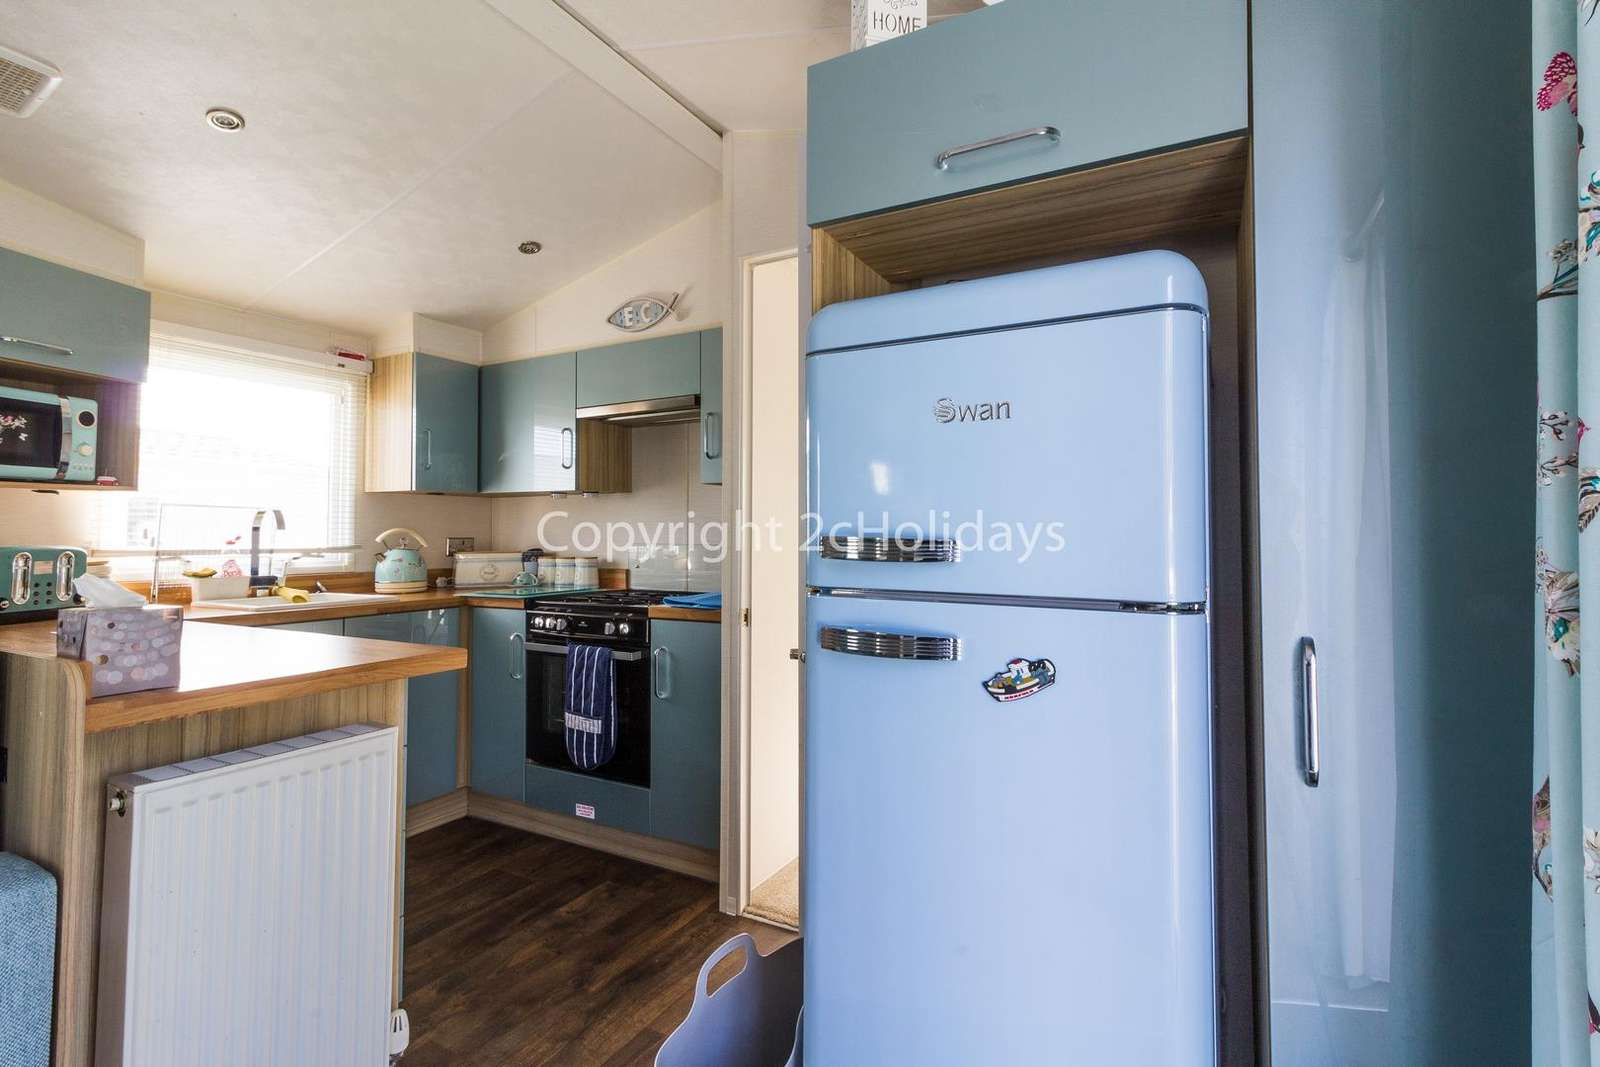 Great kitchen with a full size 'smeg' style fridge freezer and washer/dryer!